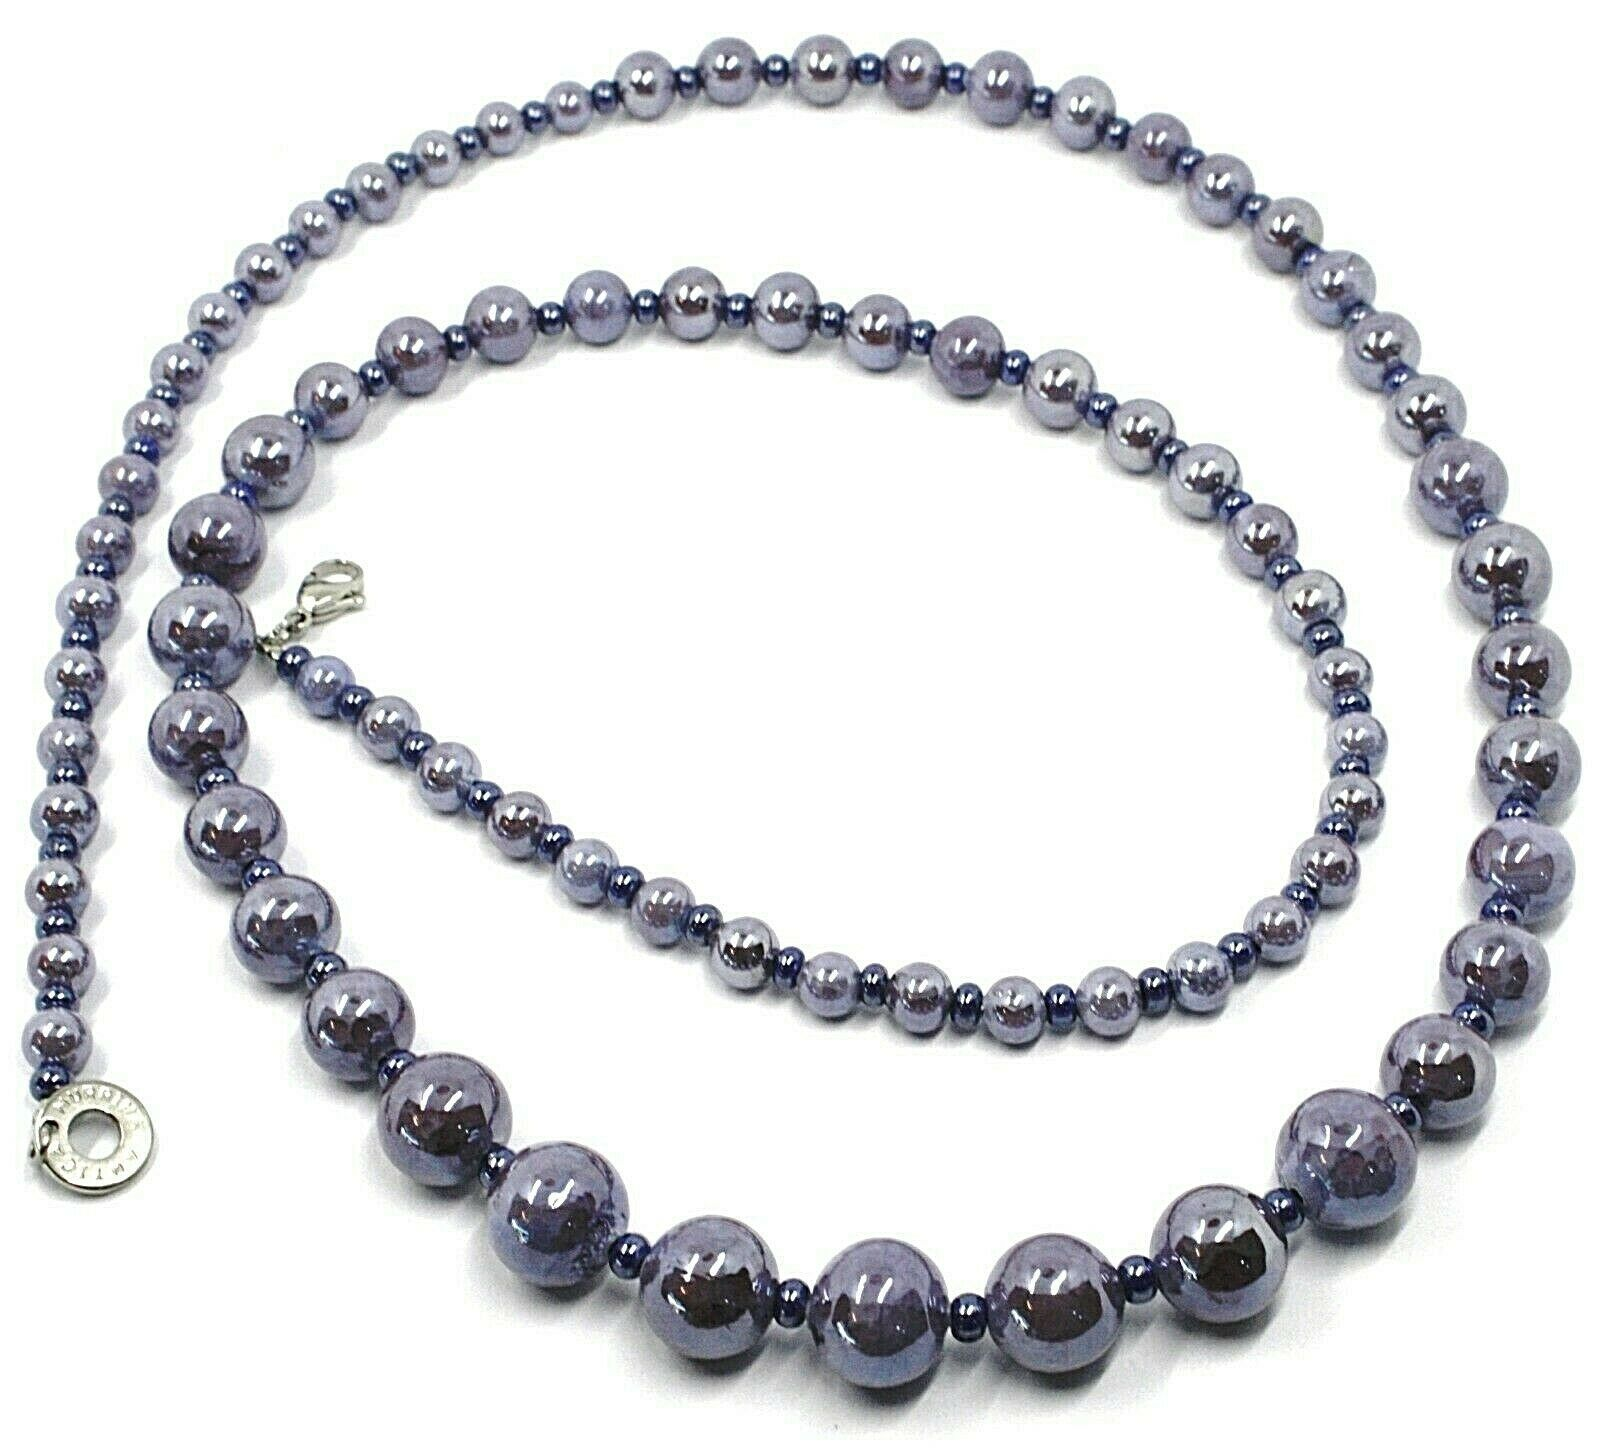 Necklace Antica Murrina Venezia,COA25A58,Spheres Purple,Length 90 CM